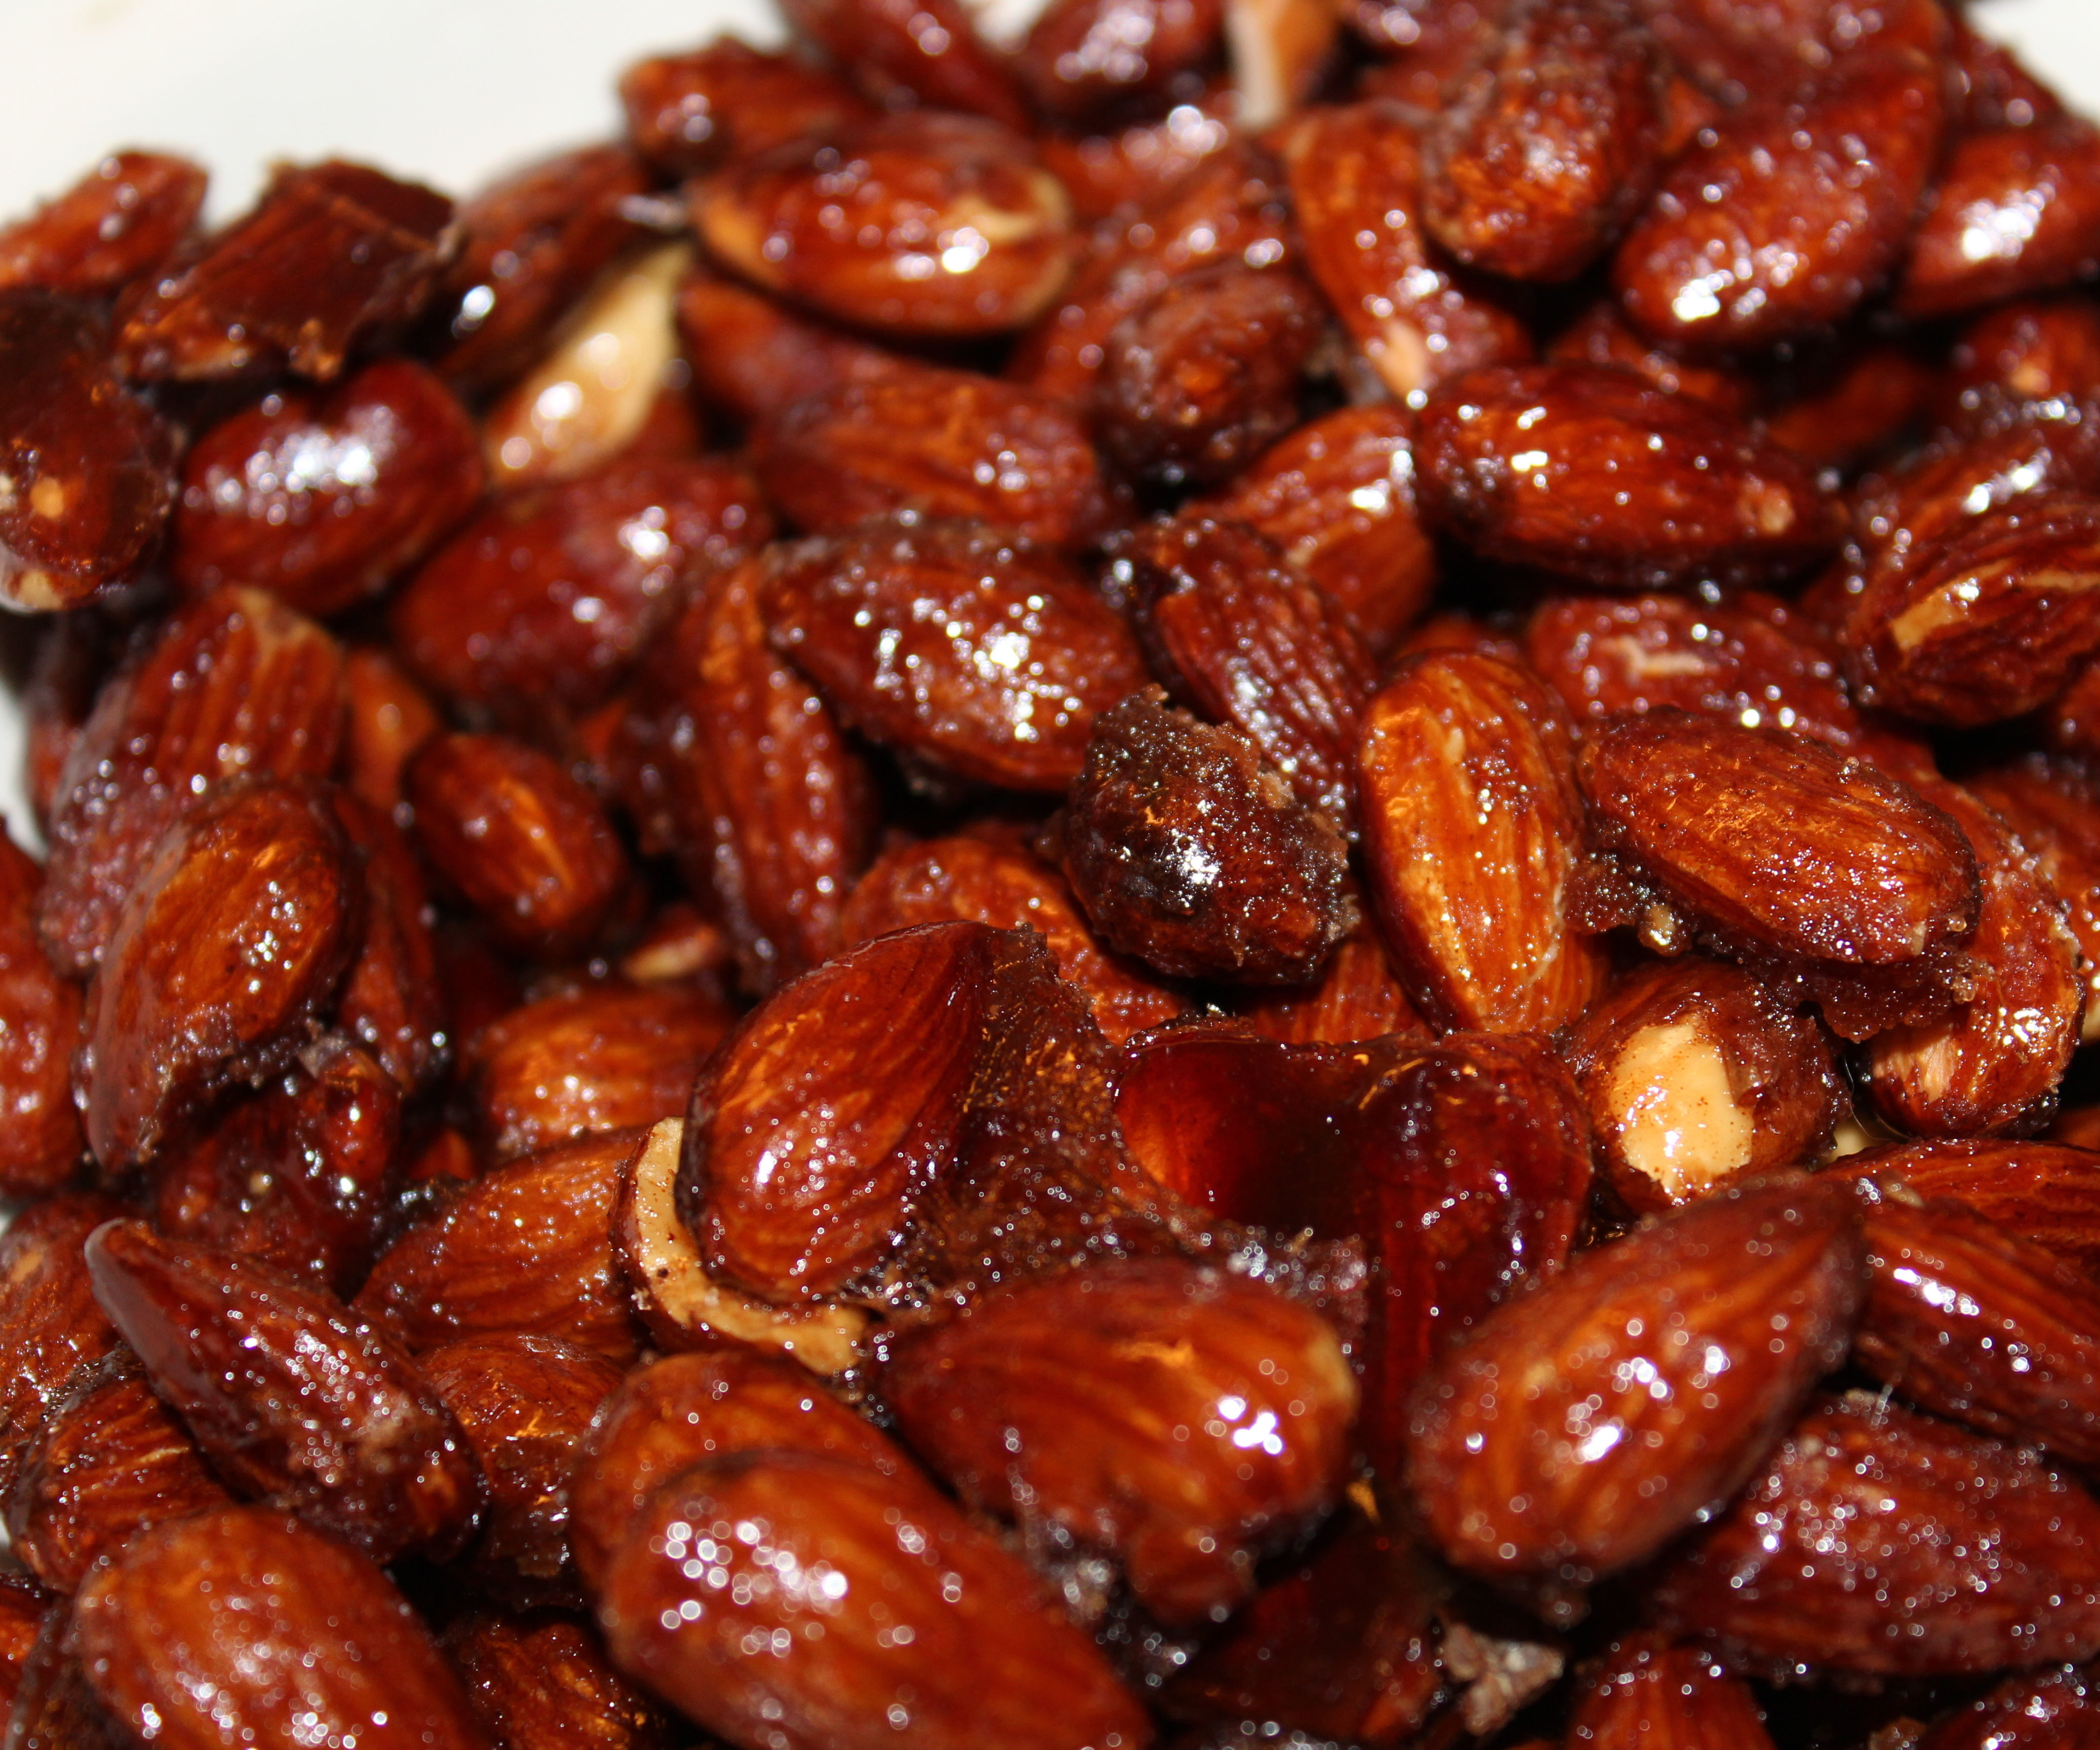 How to Make Cinnamon Almonds